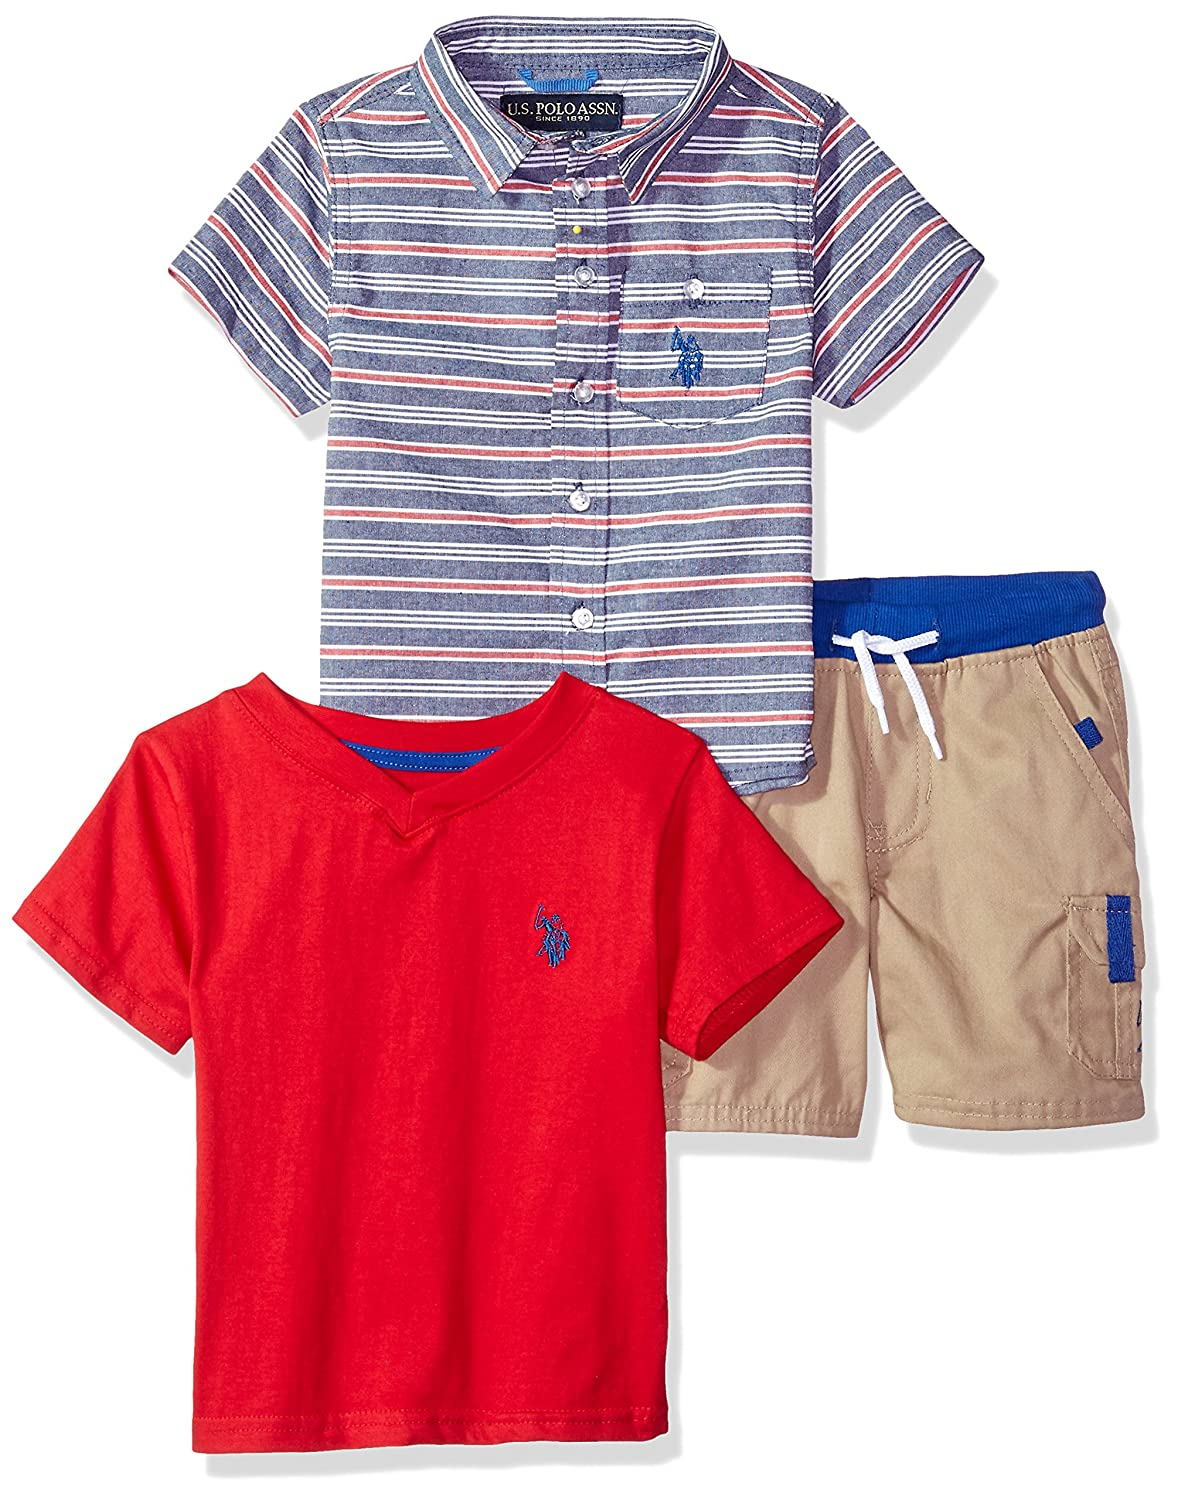 U.S. Polo Assn. Boys Sleeve, T-Shirt and Short Set